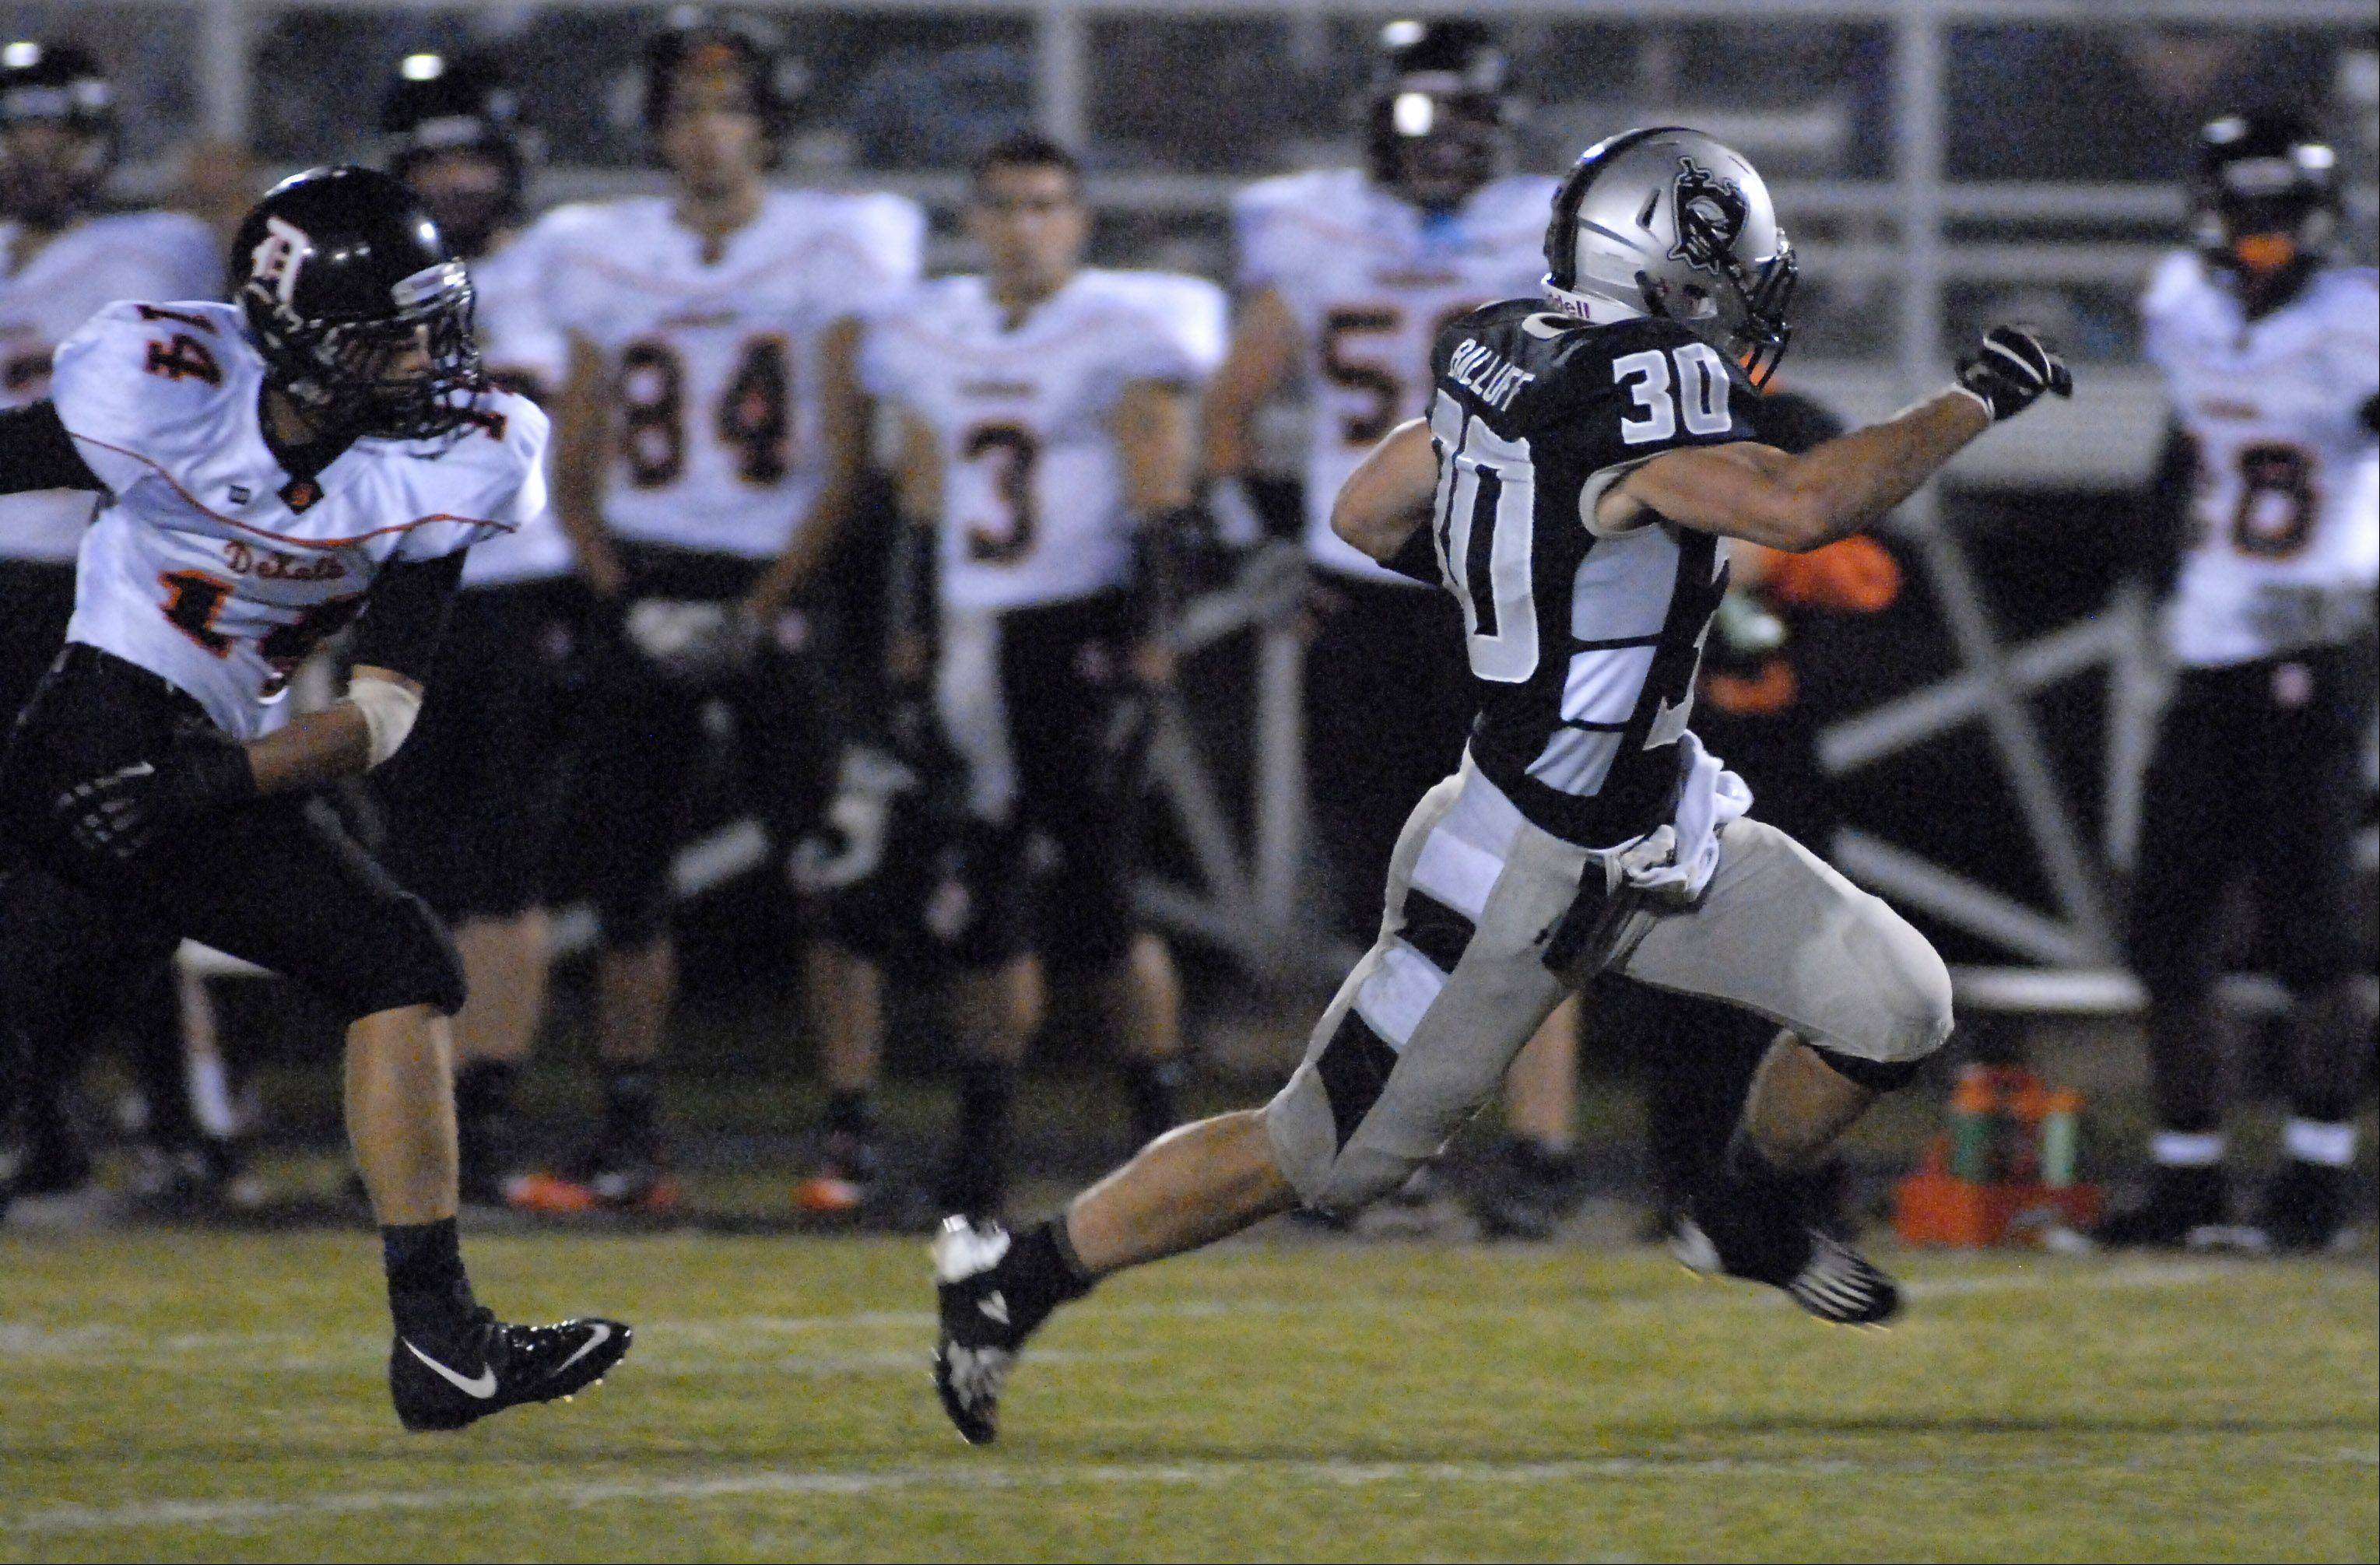 Kaneland strikes early and often